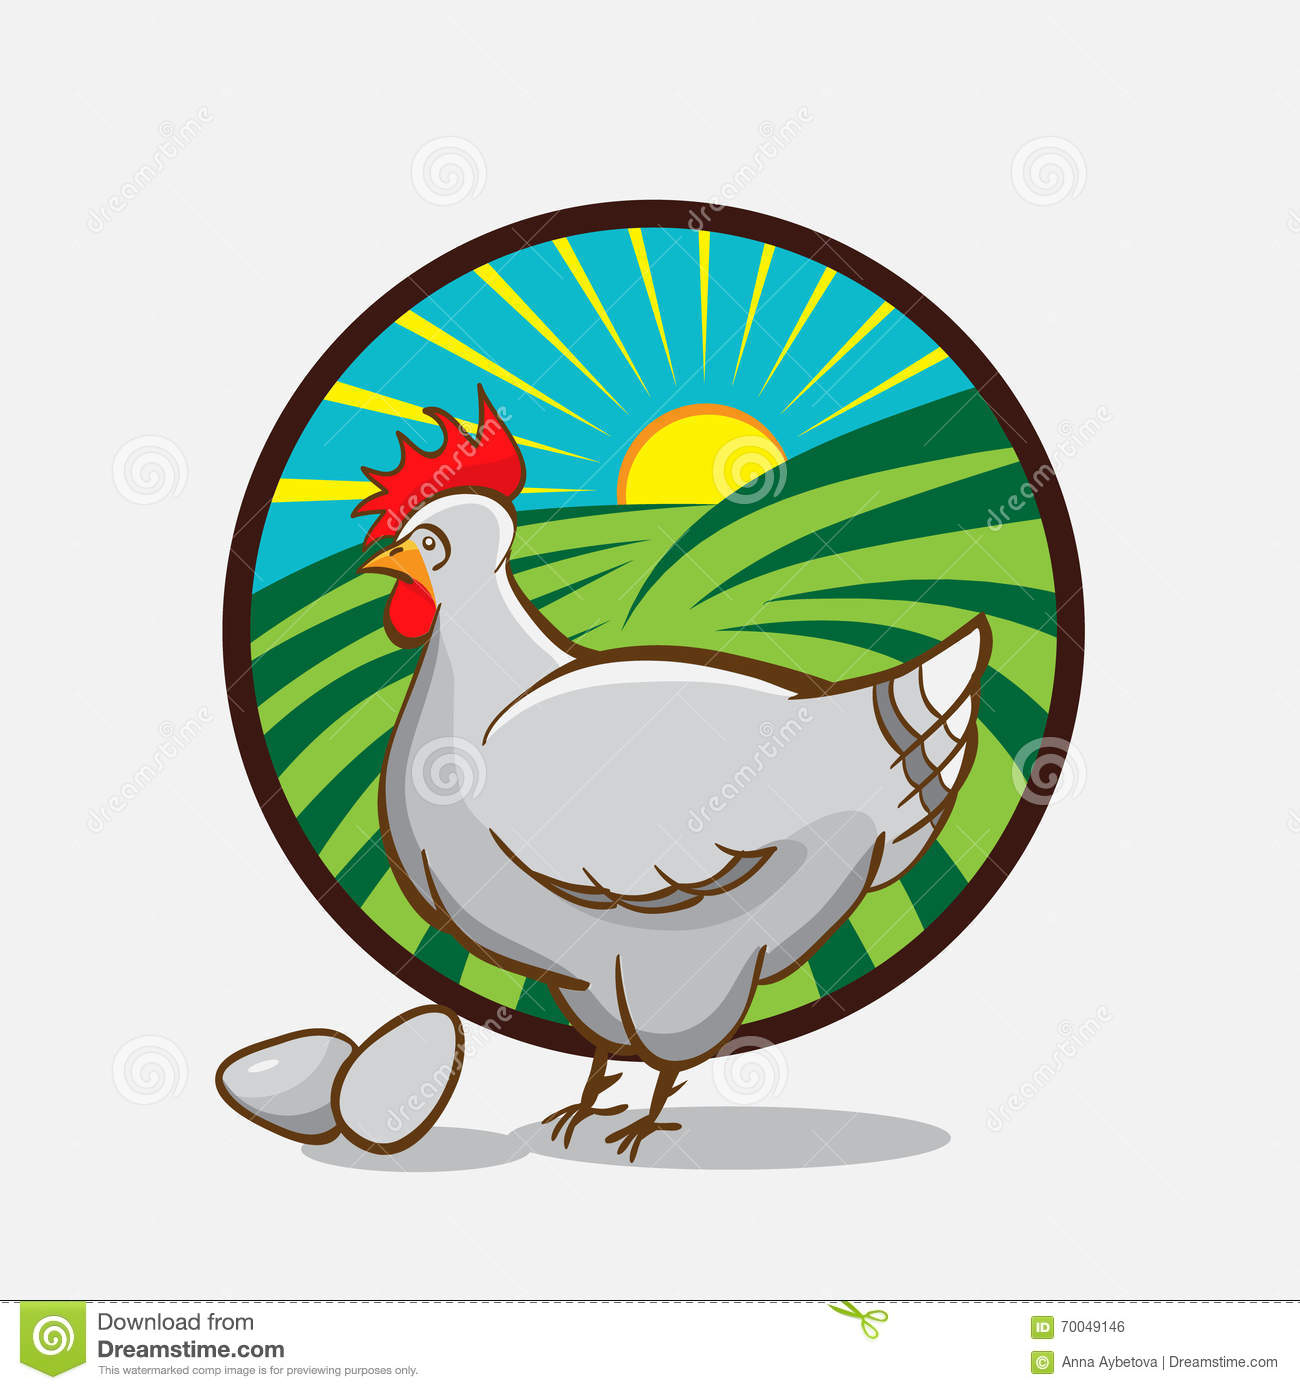 poultry farming logo wwwpixsharkcom images galleries